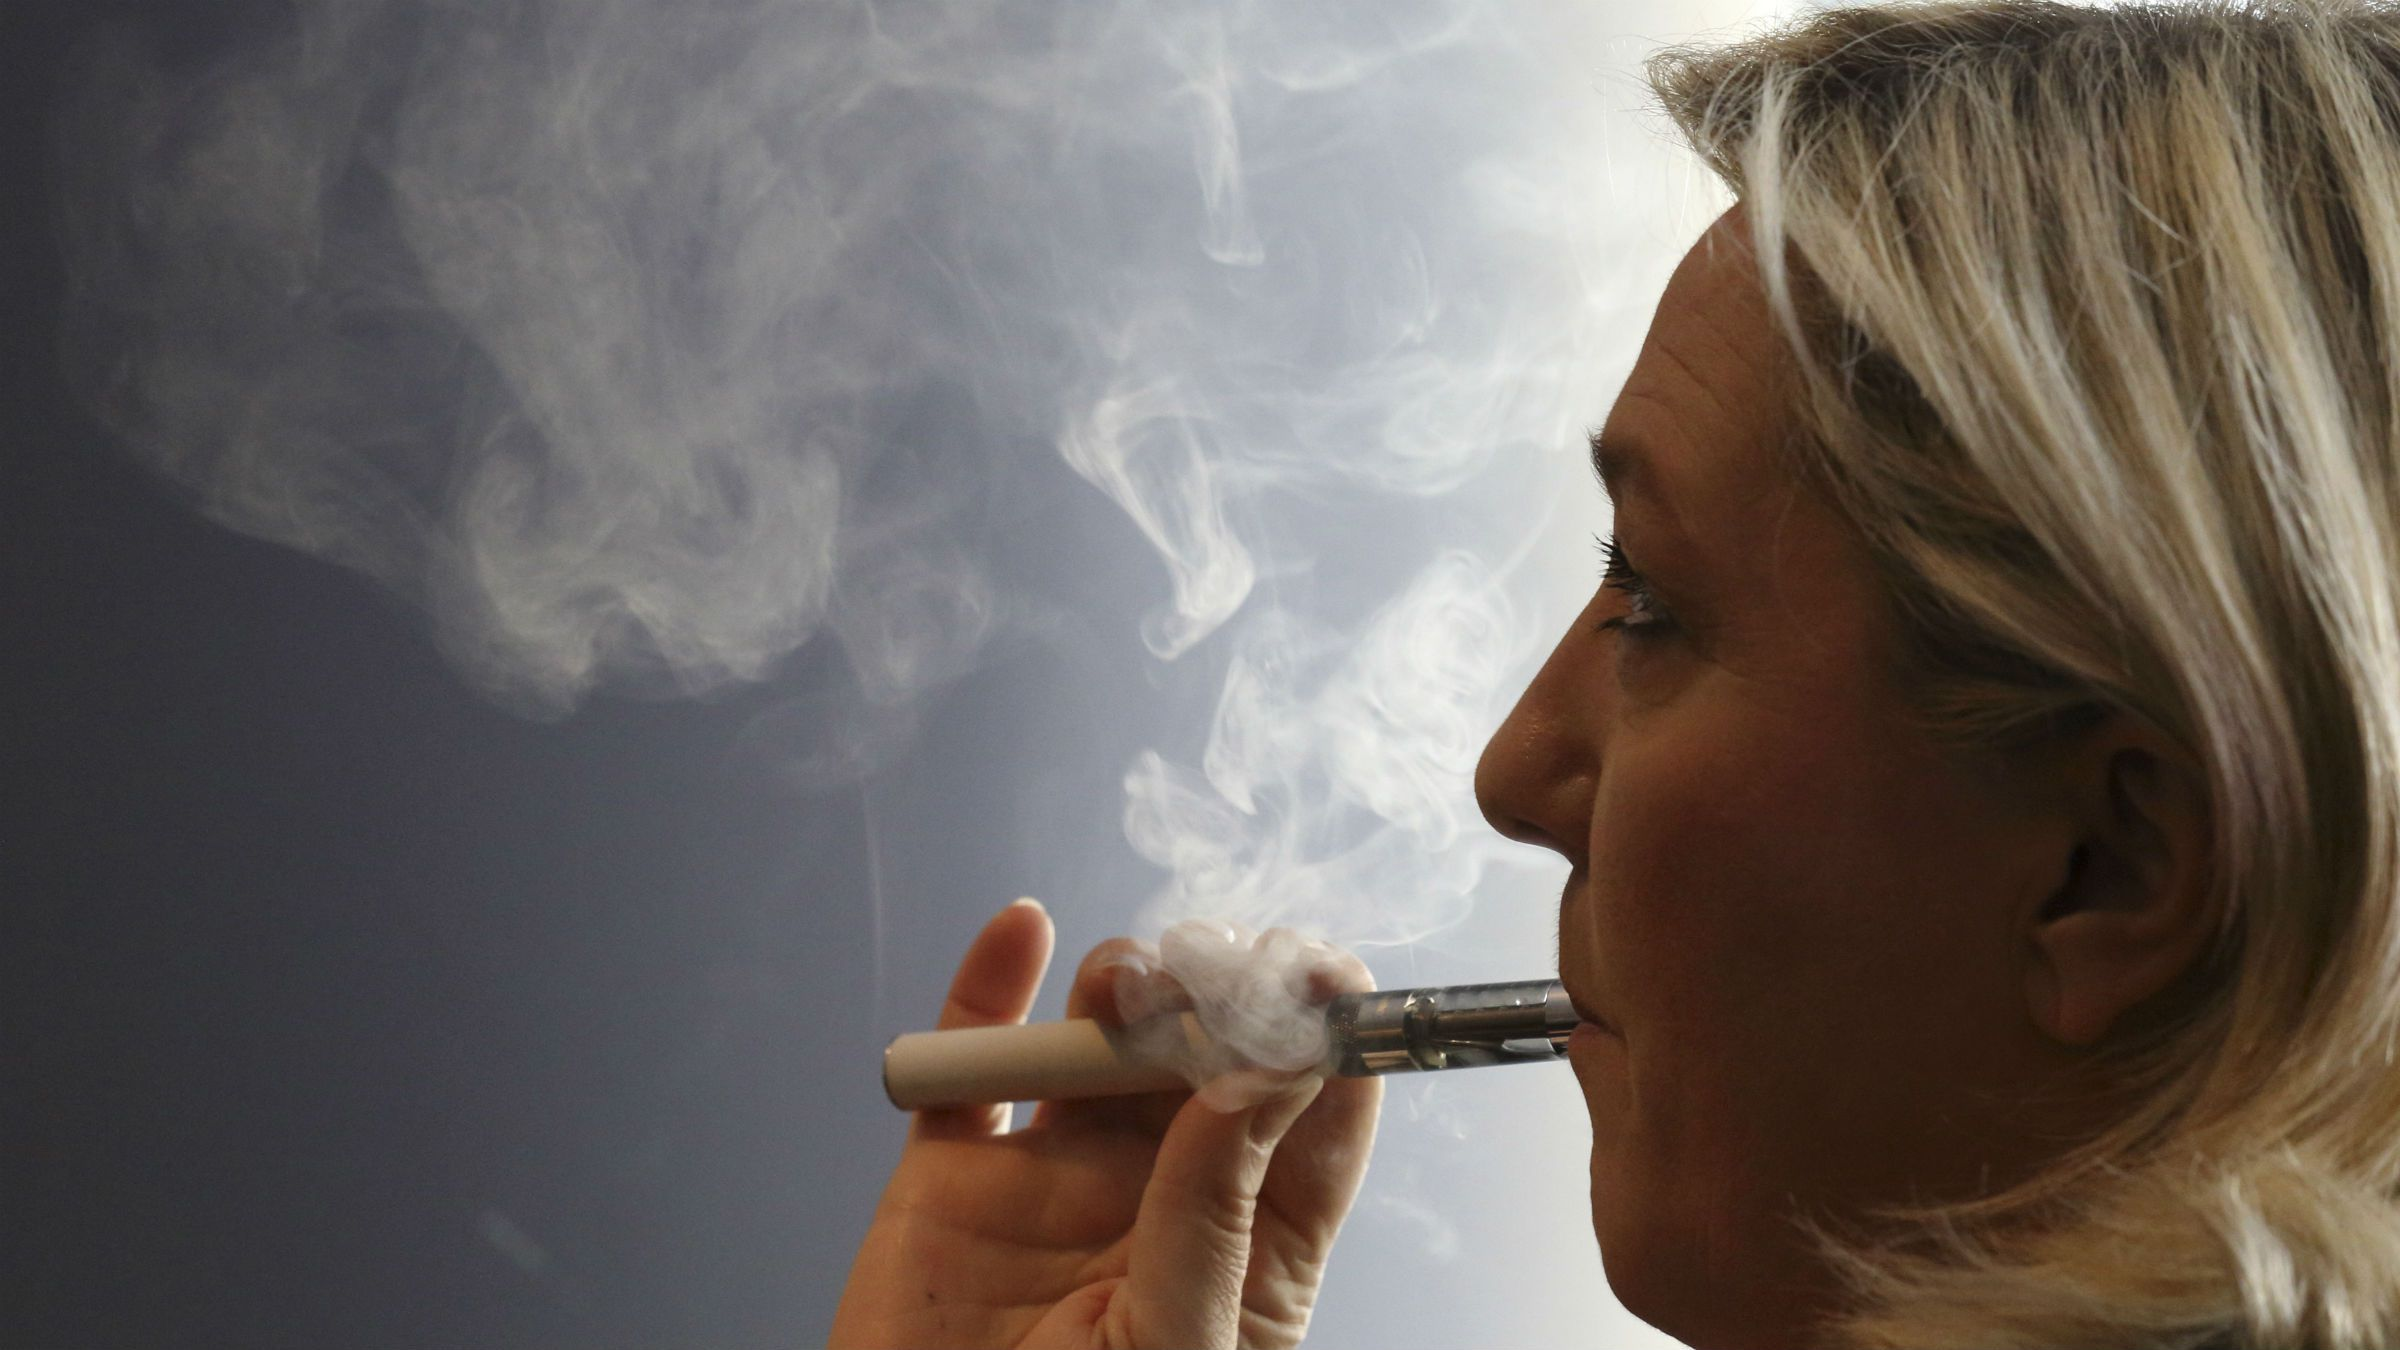 Marine Le Pen, France's far-right National Front political party leader, smokes an electronic cigarette as she attends a debate for the upcoming European Parliamentary elections organized by France 3 television in Lille, May 20, 2014.